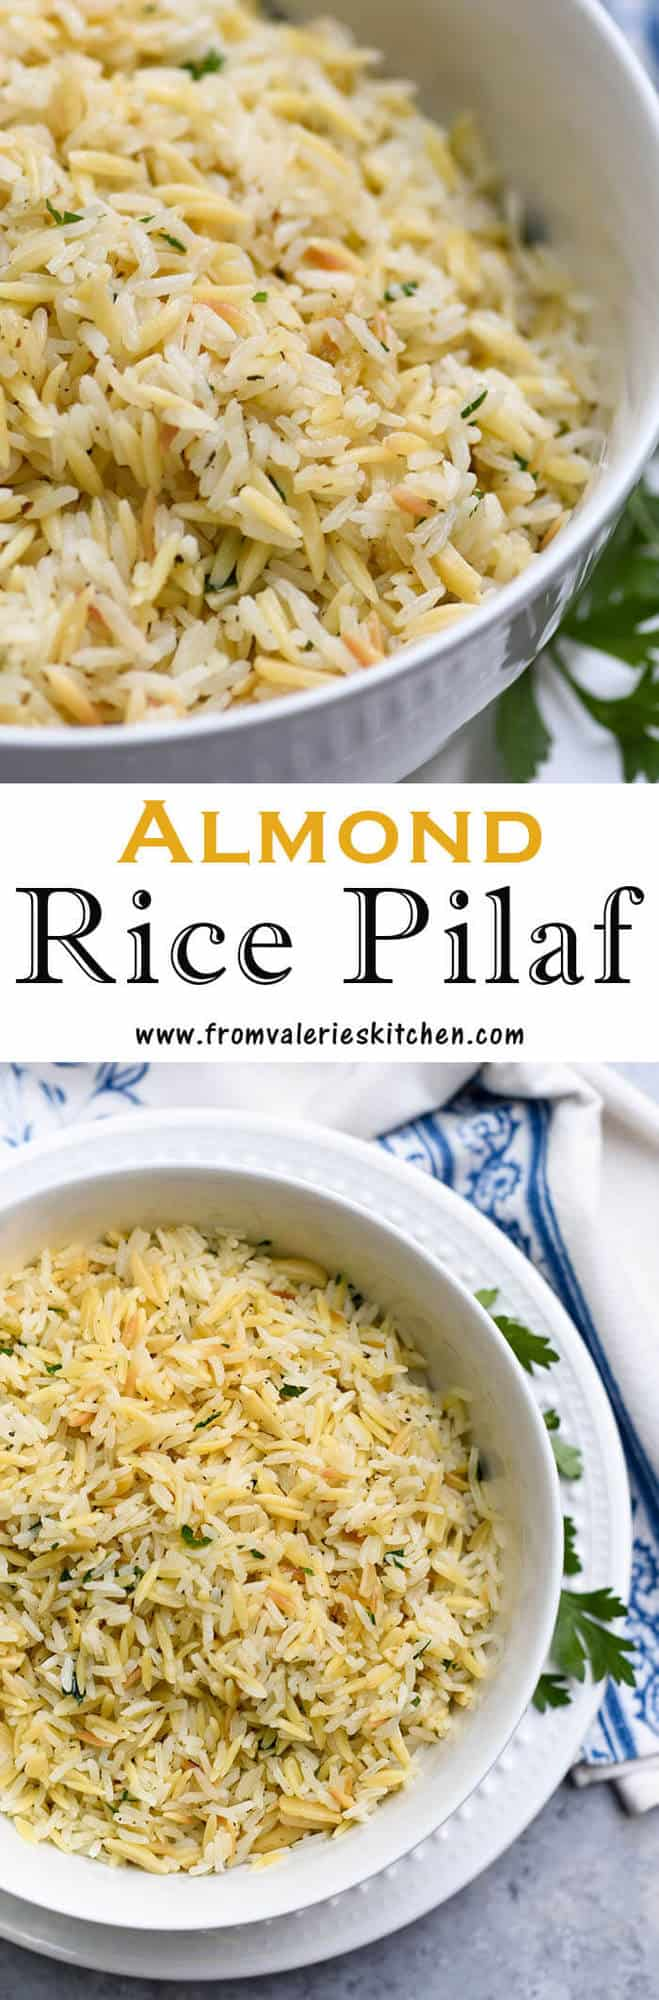 A two image vertical collage of Almond Rice Pilaf with overlay text.